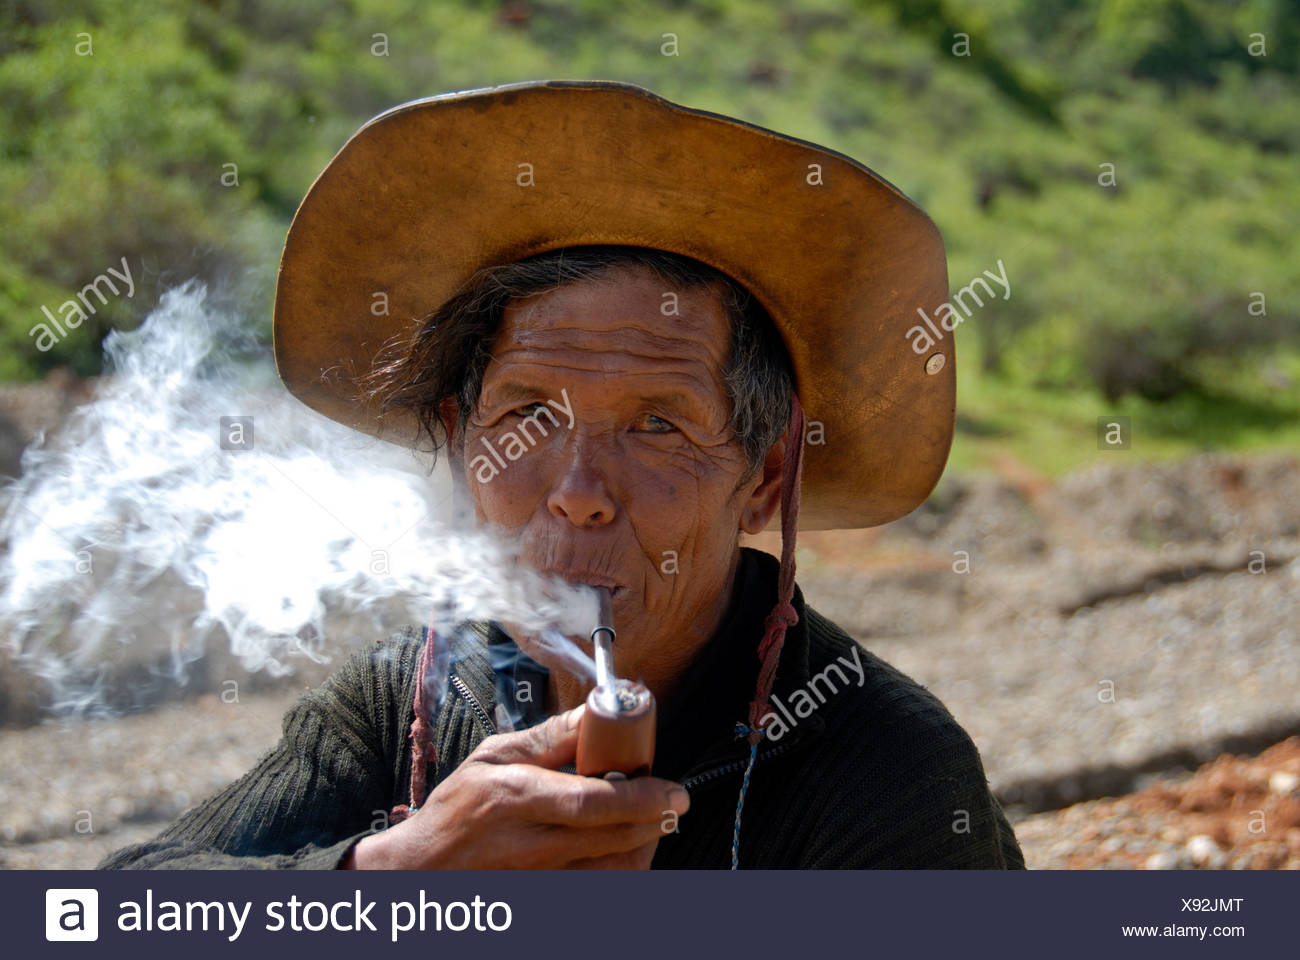 Portrait, ethnology, man of the Mosu ethnicity with hat, smoking a pipe, Yongning, Lugu Hu Lake area, Yunnan Province, People's - Stock Image